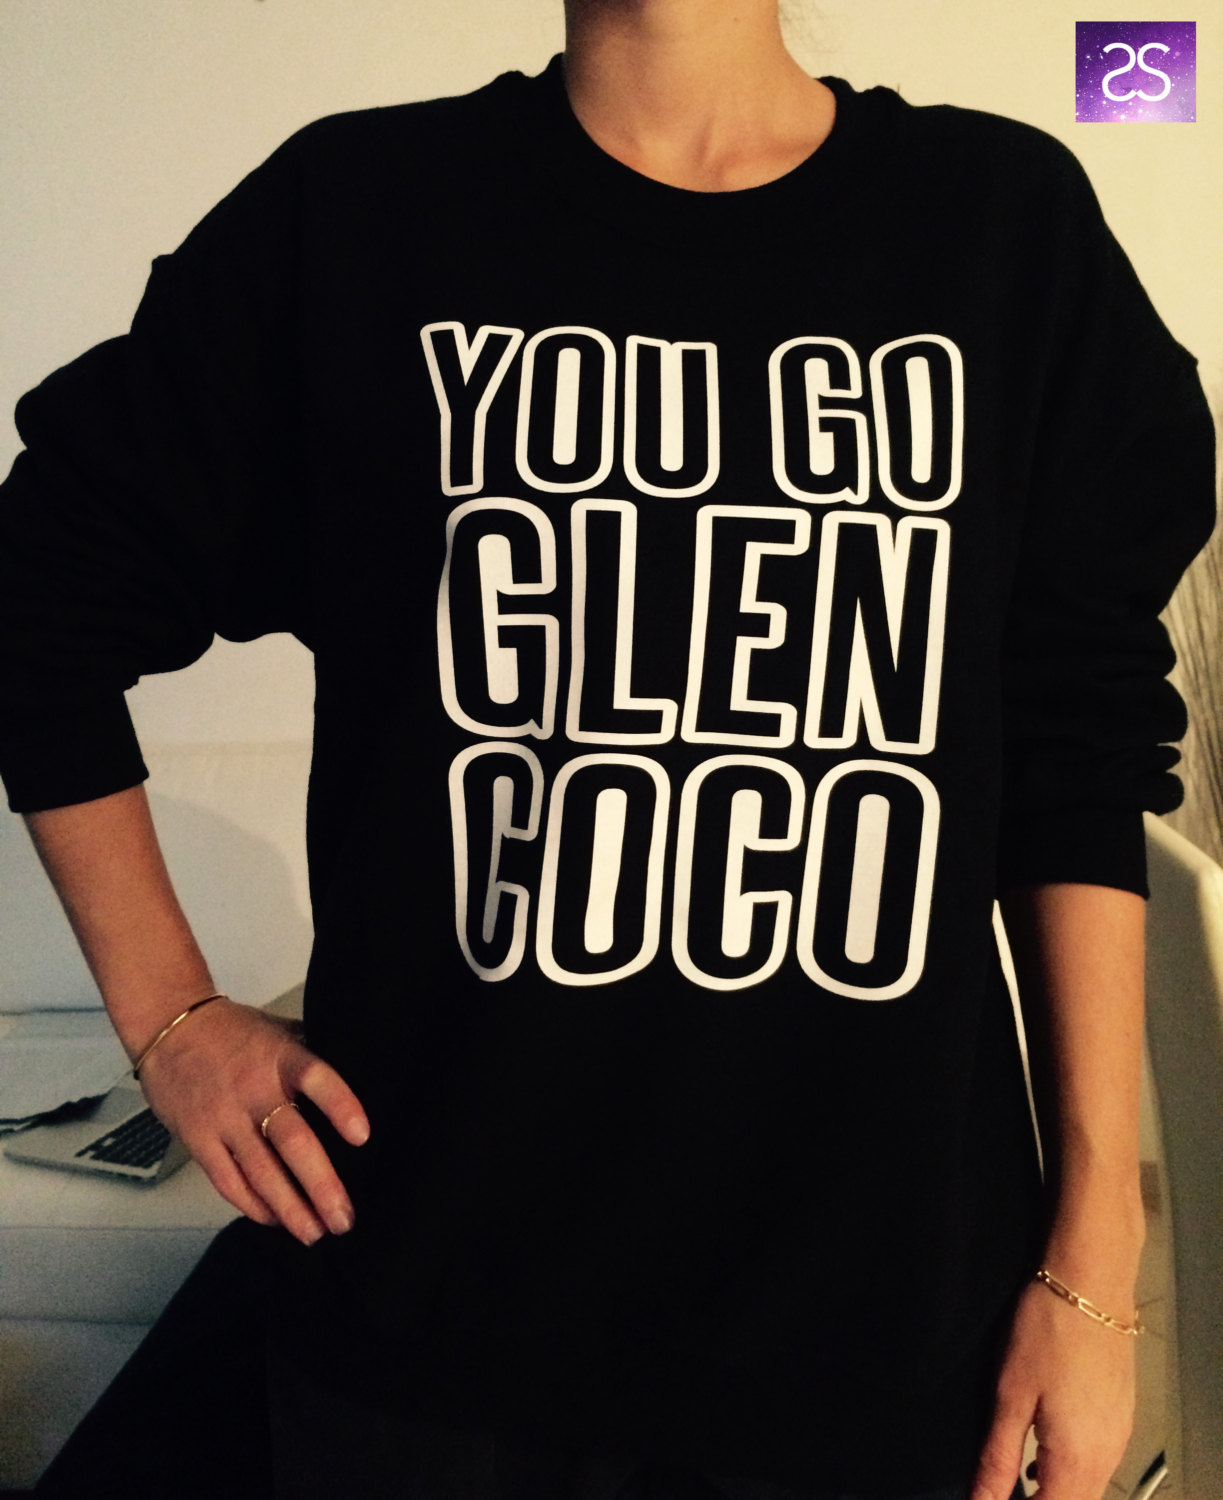 You go Glen Coco sweatshirt jumper cool fashion sweatshirts girls UNISEX sizing sweater teens girl fashion gifts girlfriends teenagers swag